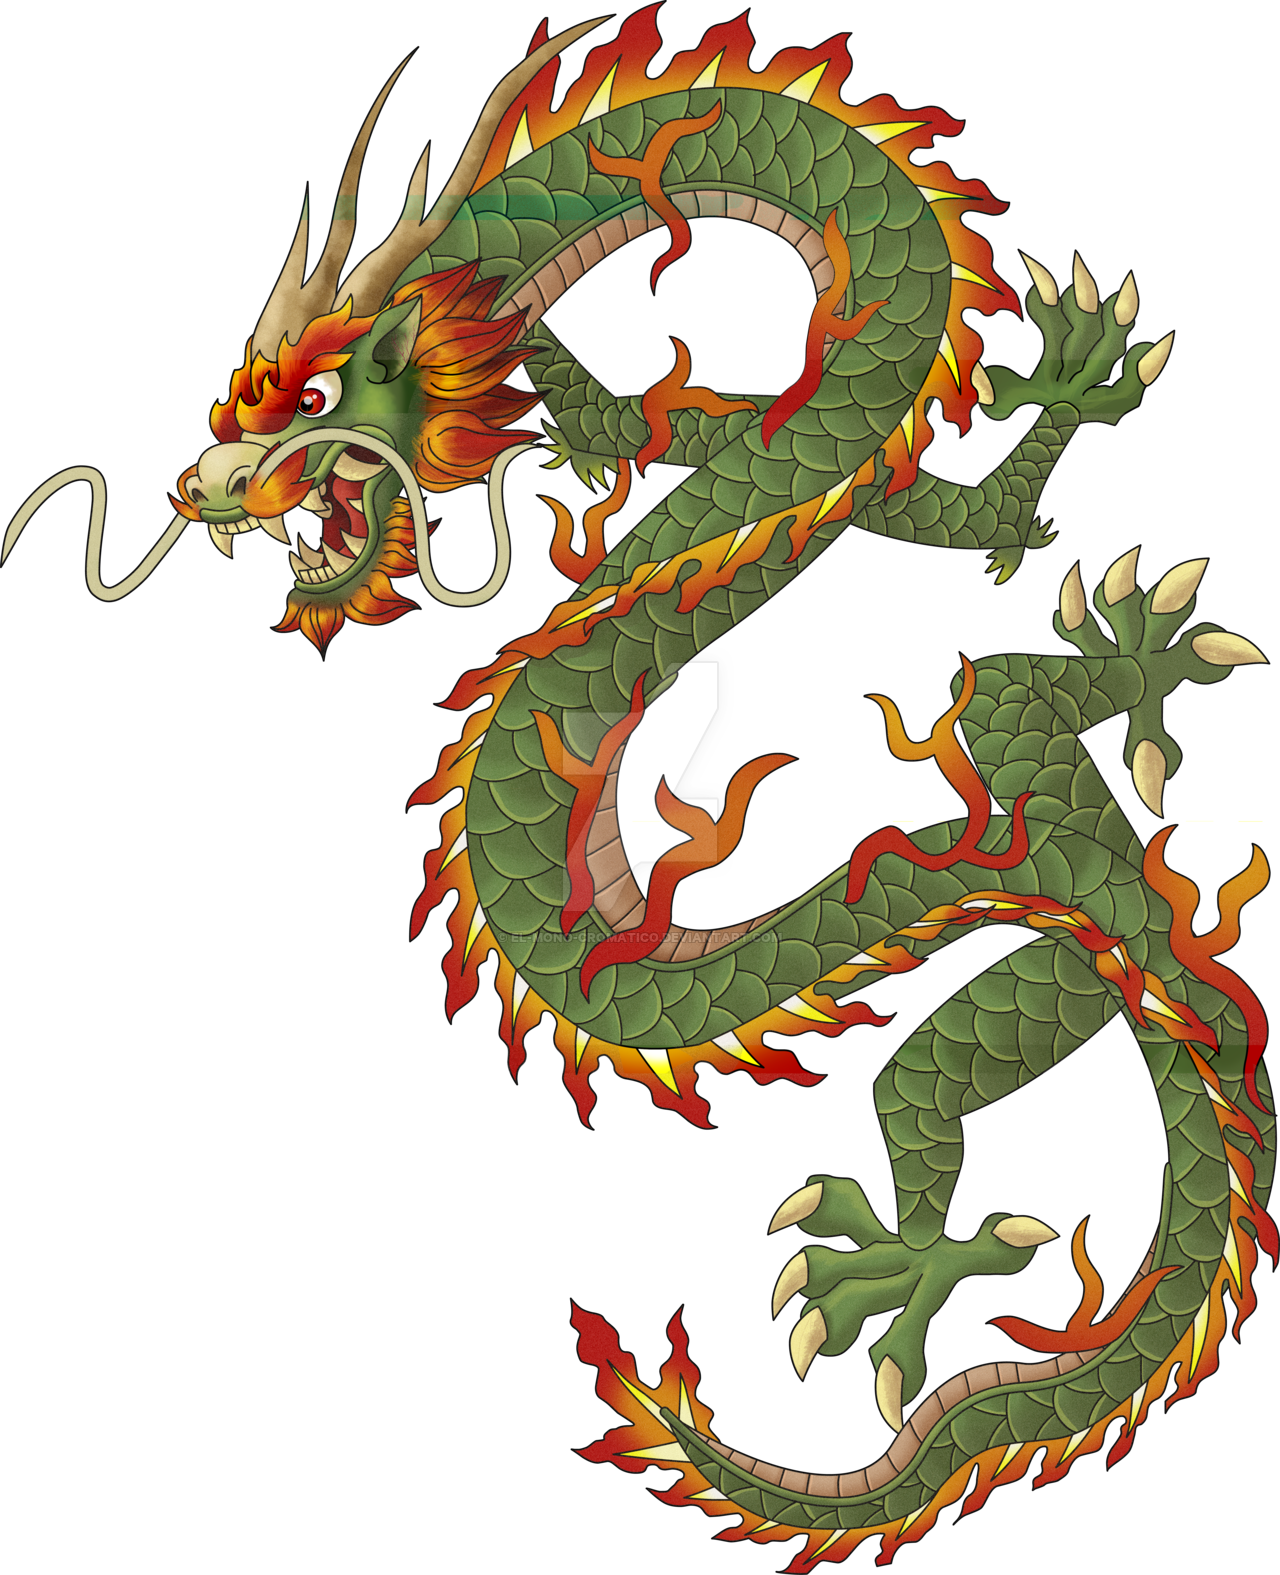 Chinese dragon png. Transparent images all clipart